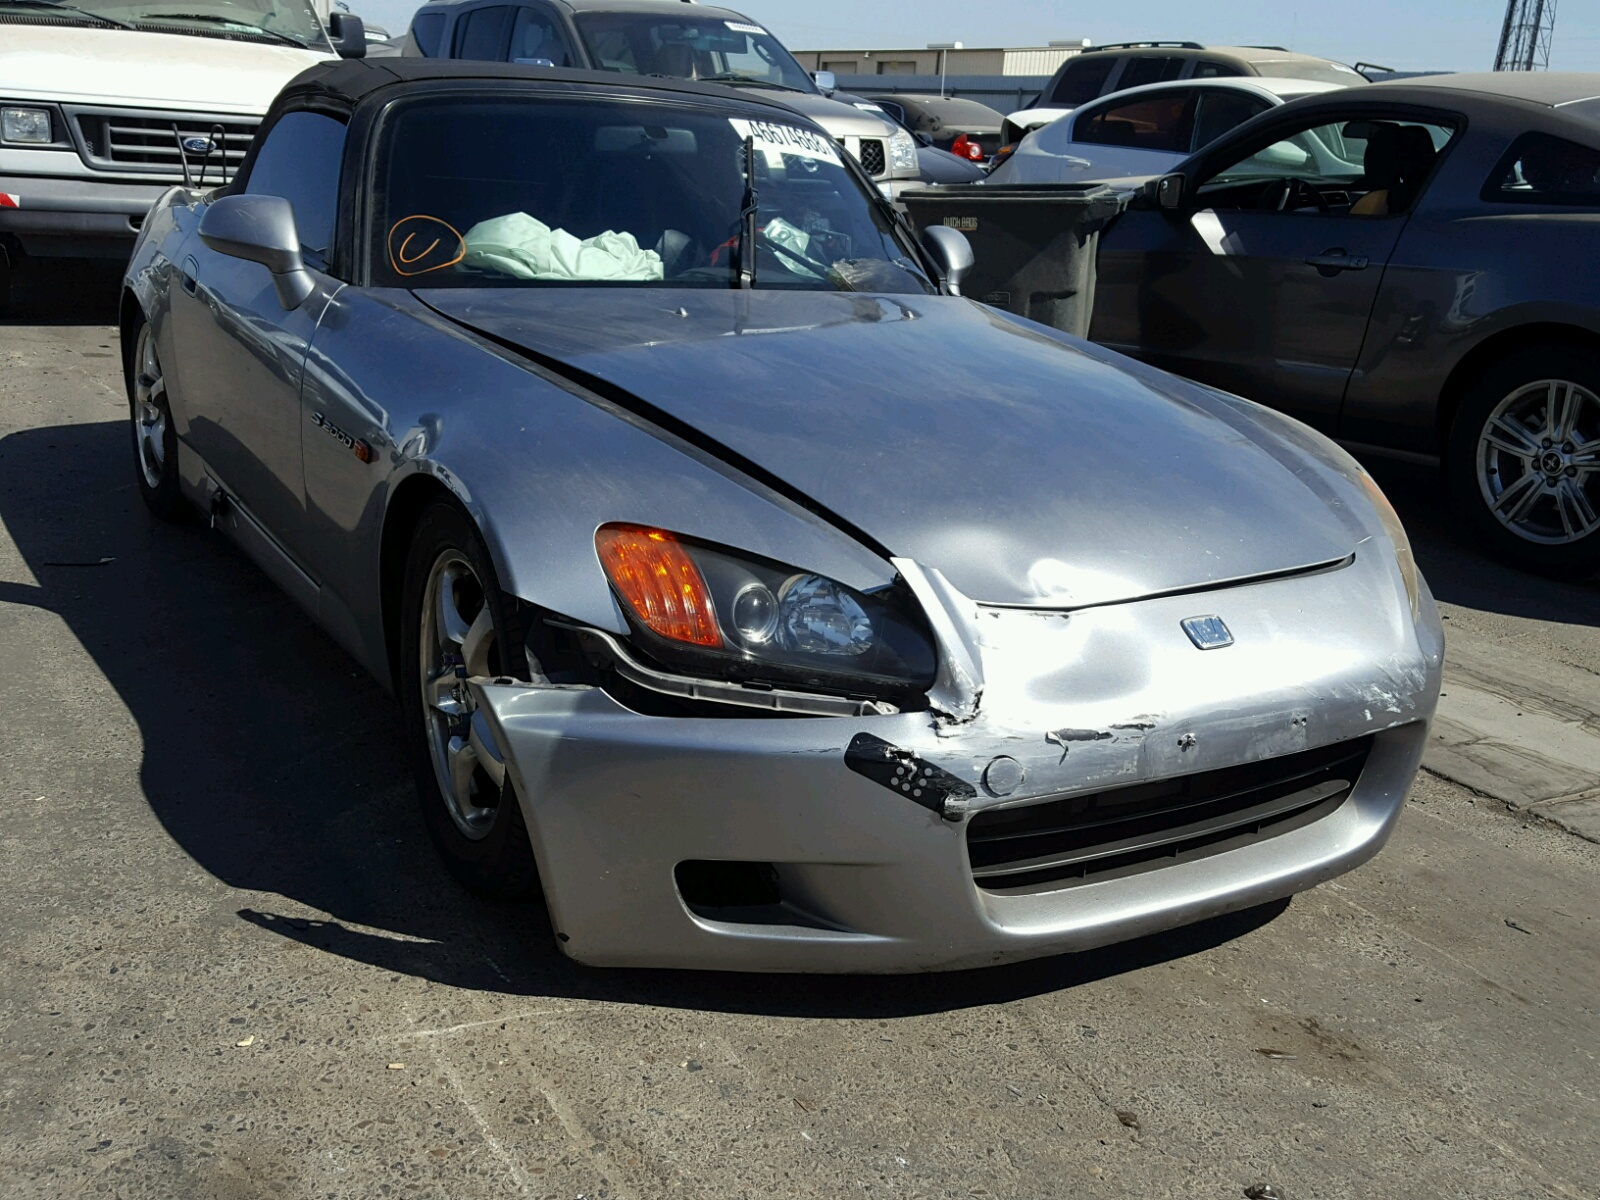 Salvage 2001 Honda S2000 for sale